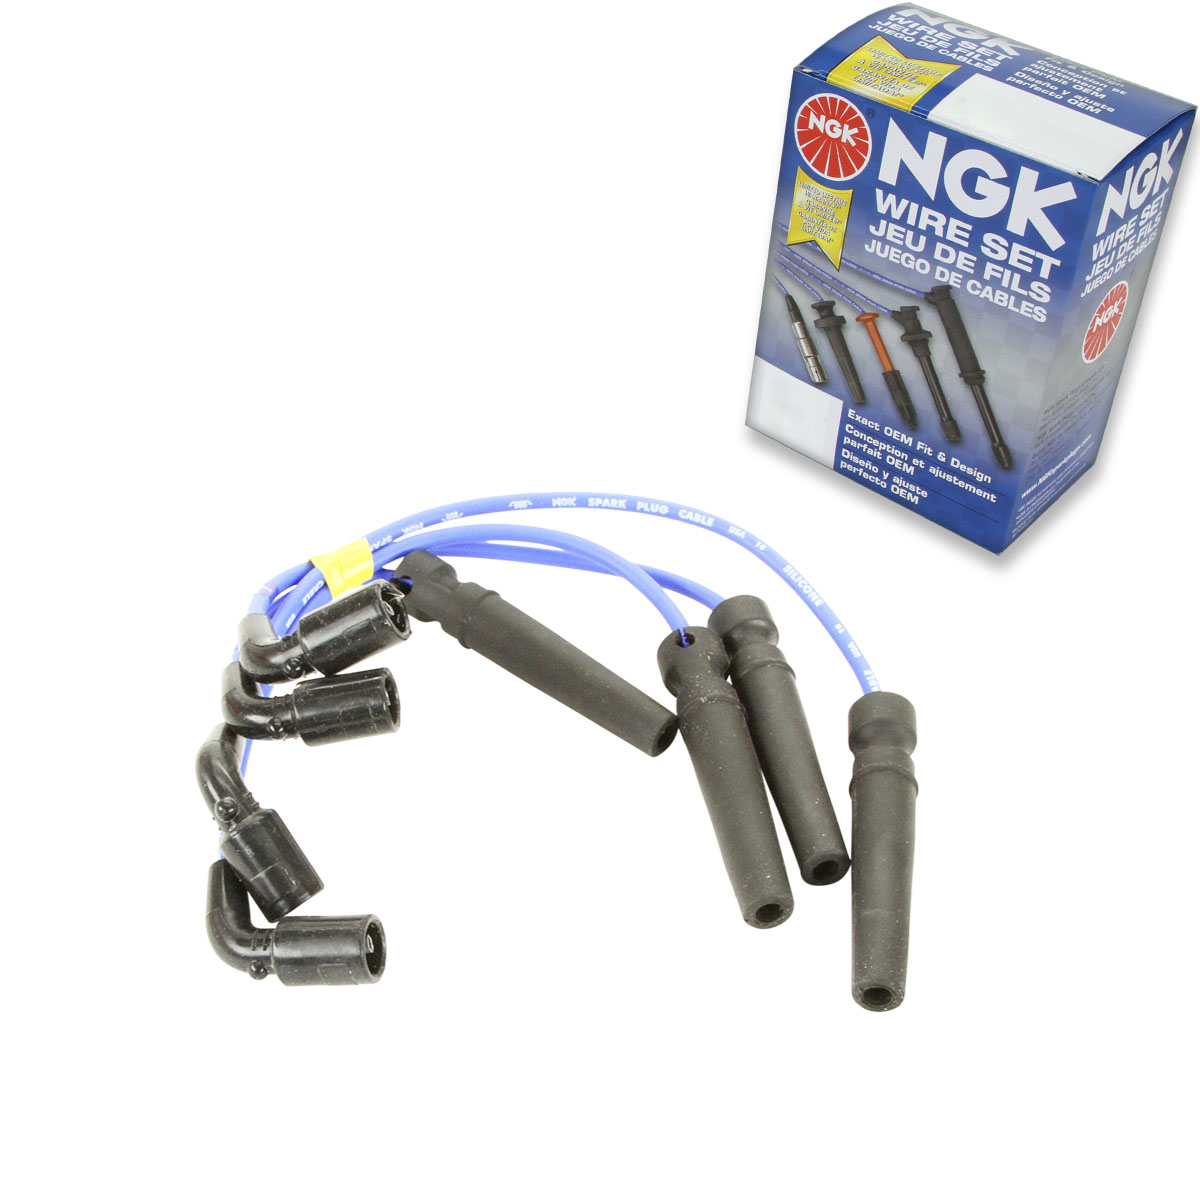 Ngk Spark Plug Wire Set 1999 2002 Daewoo Lanos 16l L4 Kit Tune 2001 Electrical Wiring Diagram Get Free Image About You Will Receive The Parts Shown Below